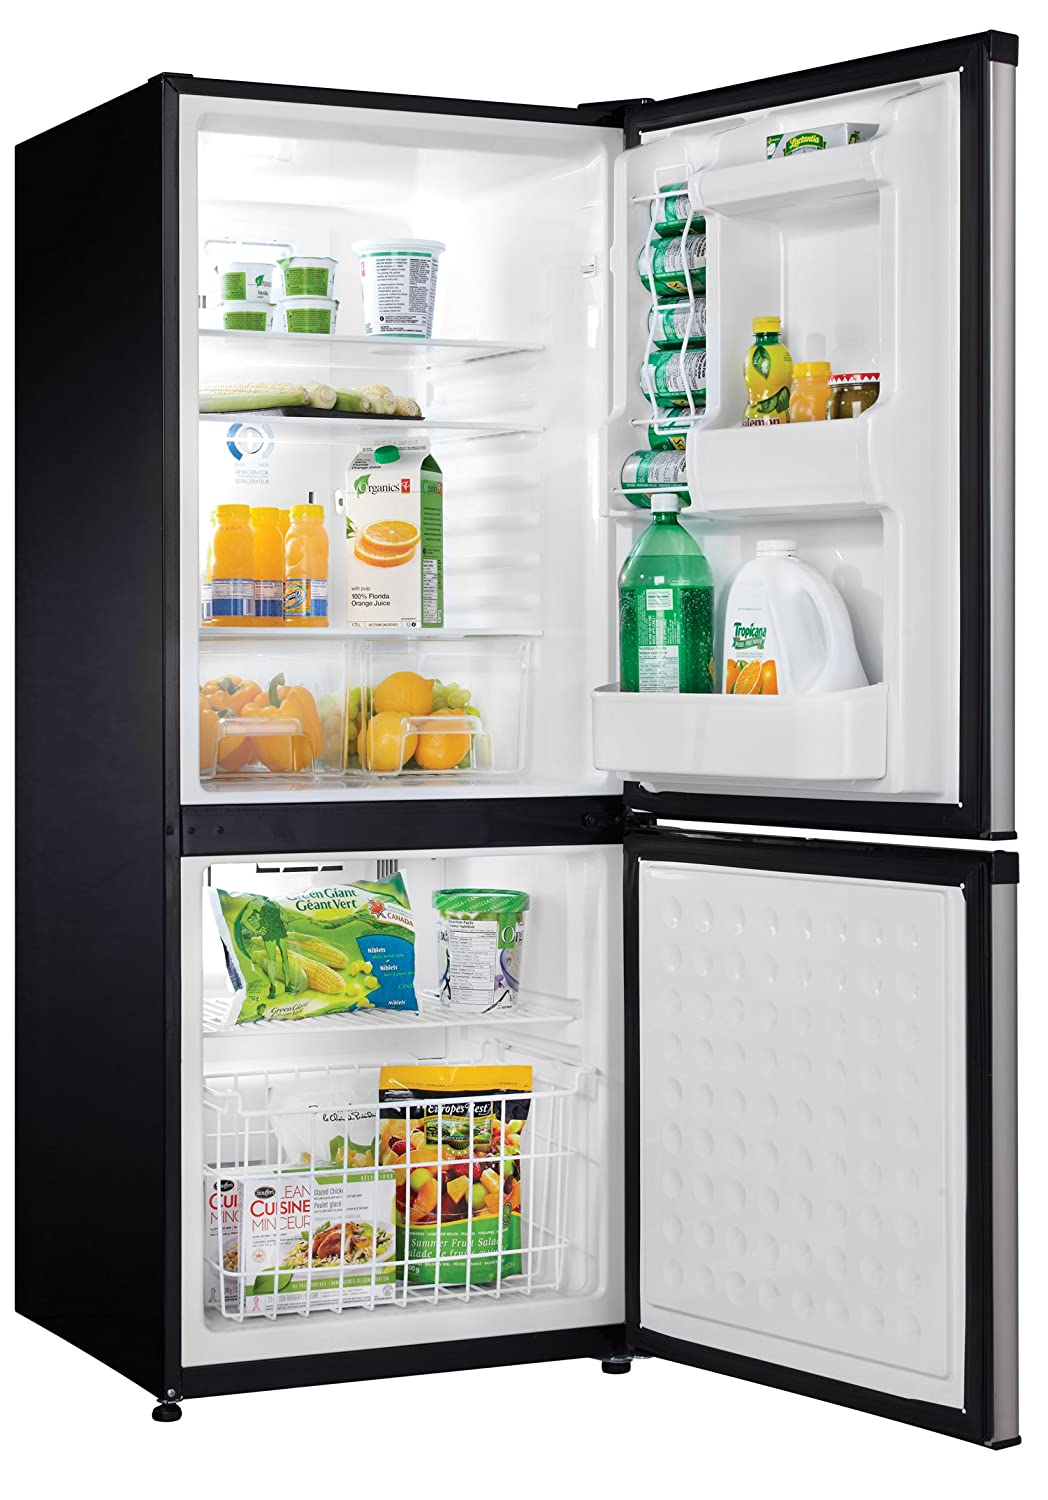 Danby 9.2 Cubic Feet Refrigerator Black Stainless Steel Look-Estar ...